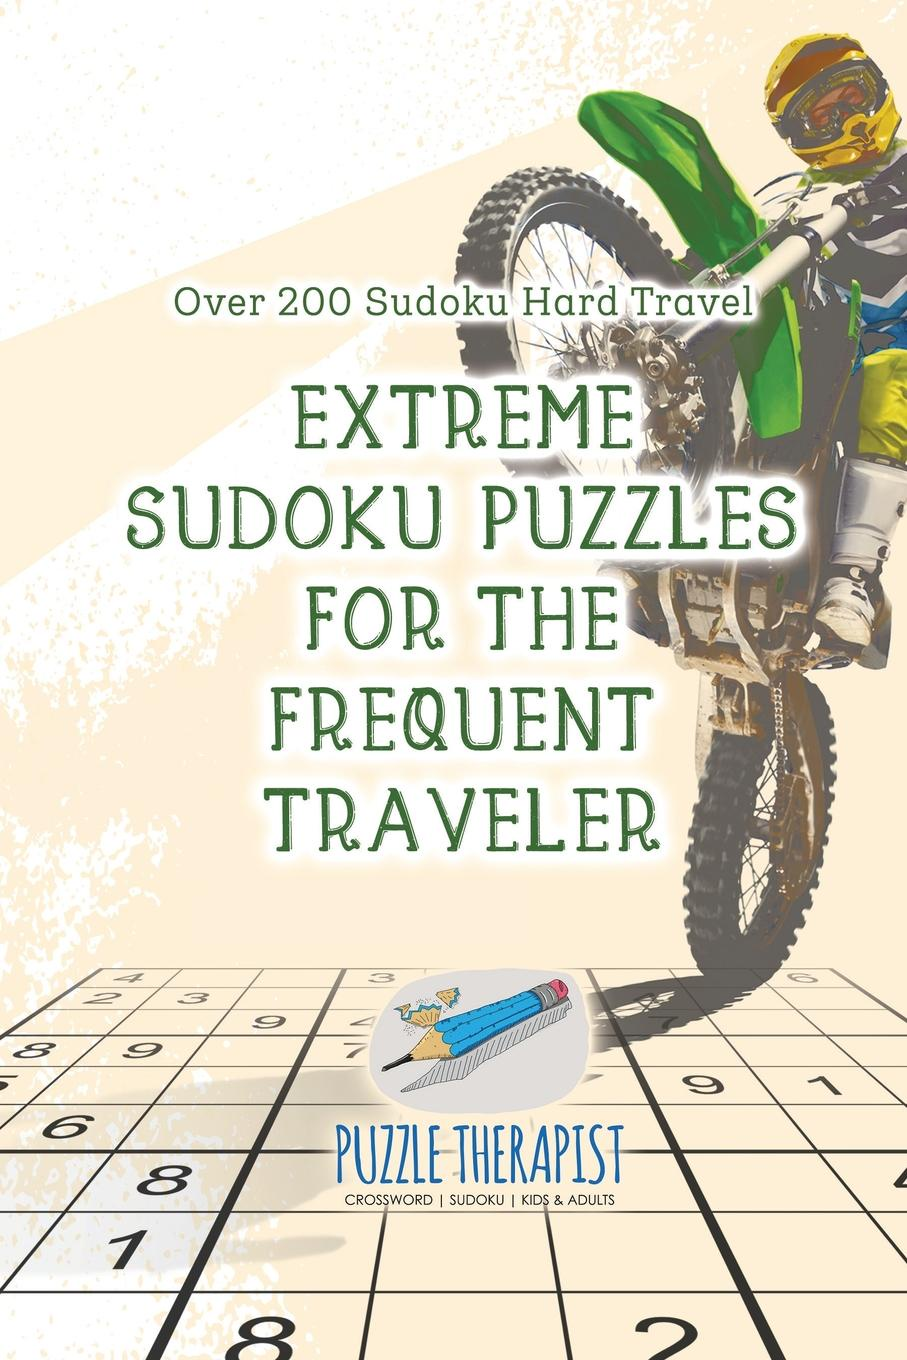 Puzzle Therapist Extreme Sudoku Puzzles for the Frequent Traveler . Over 200 Sudoku Hard Travel puzzle therapist the number addict s book of hard to extreme sudoku 200 challenging sudoku puzzles